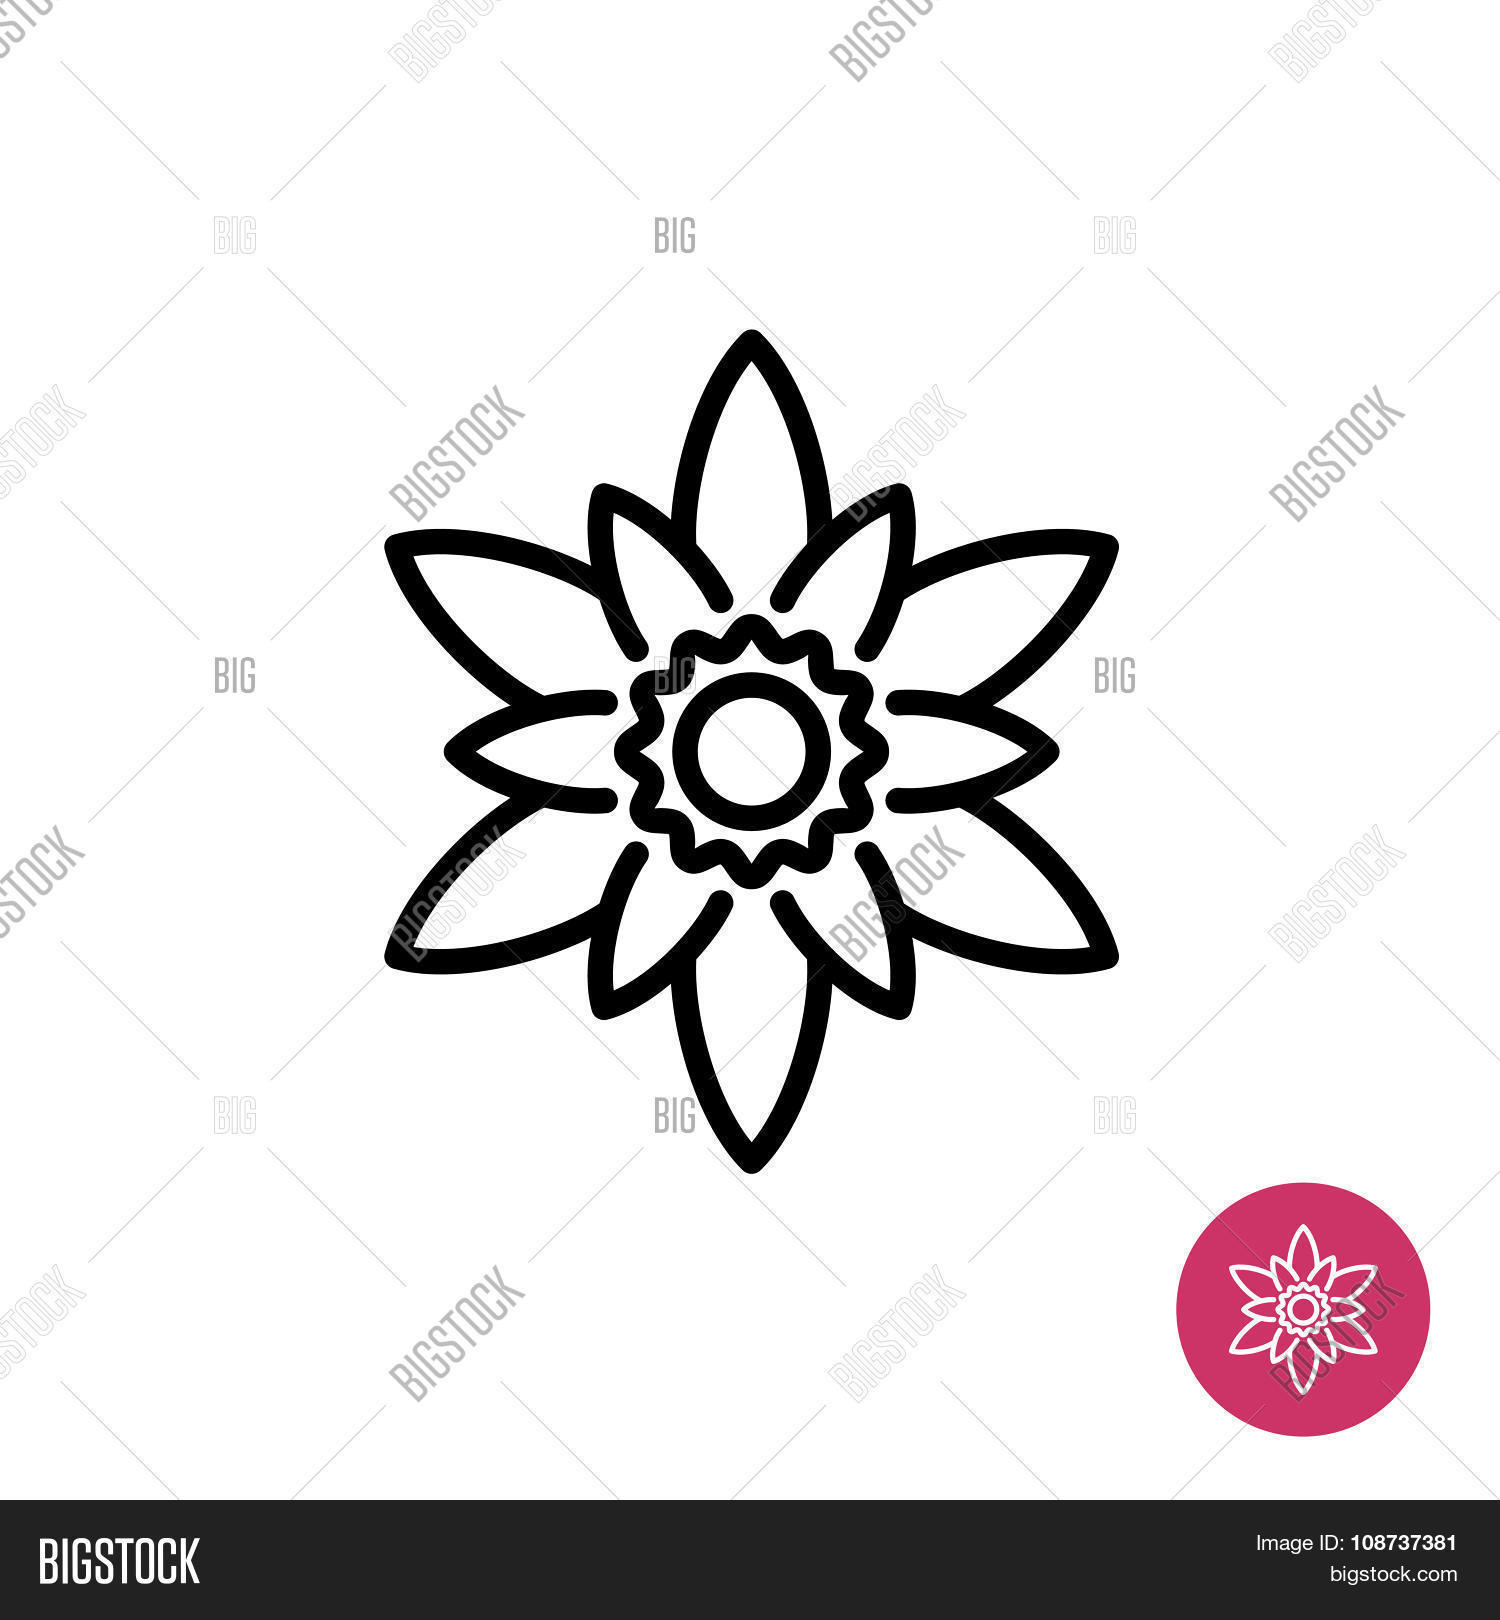 Lotus flower symbol vector photo free trial bigstock lotus flower symbol izmirmasajfo